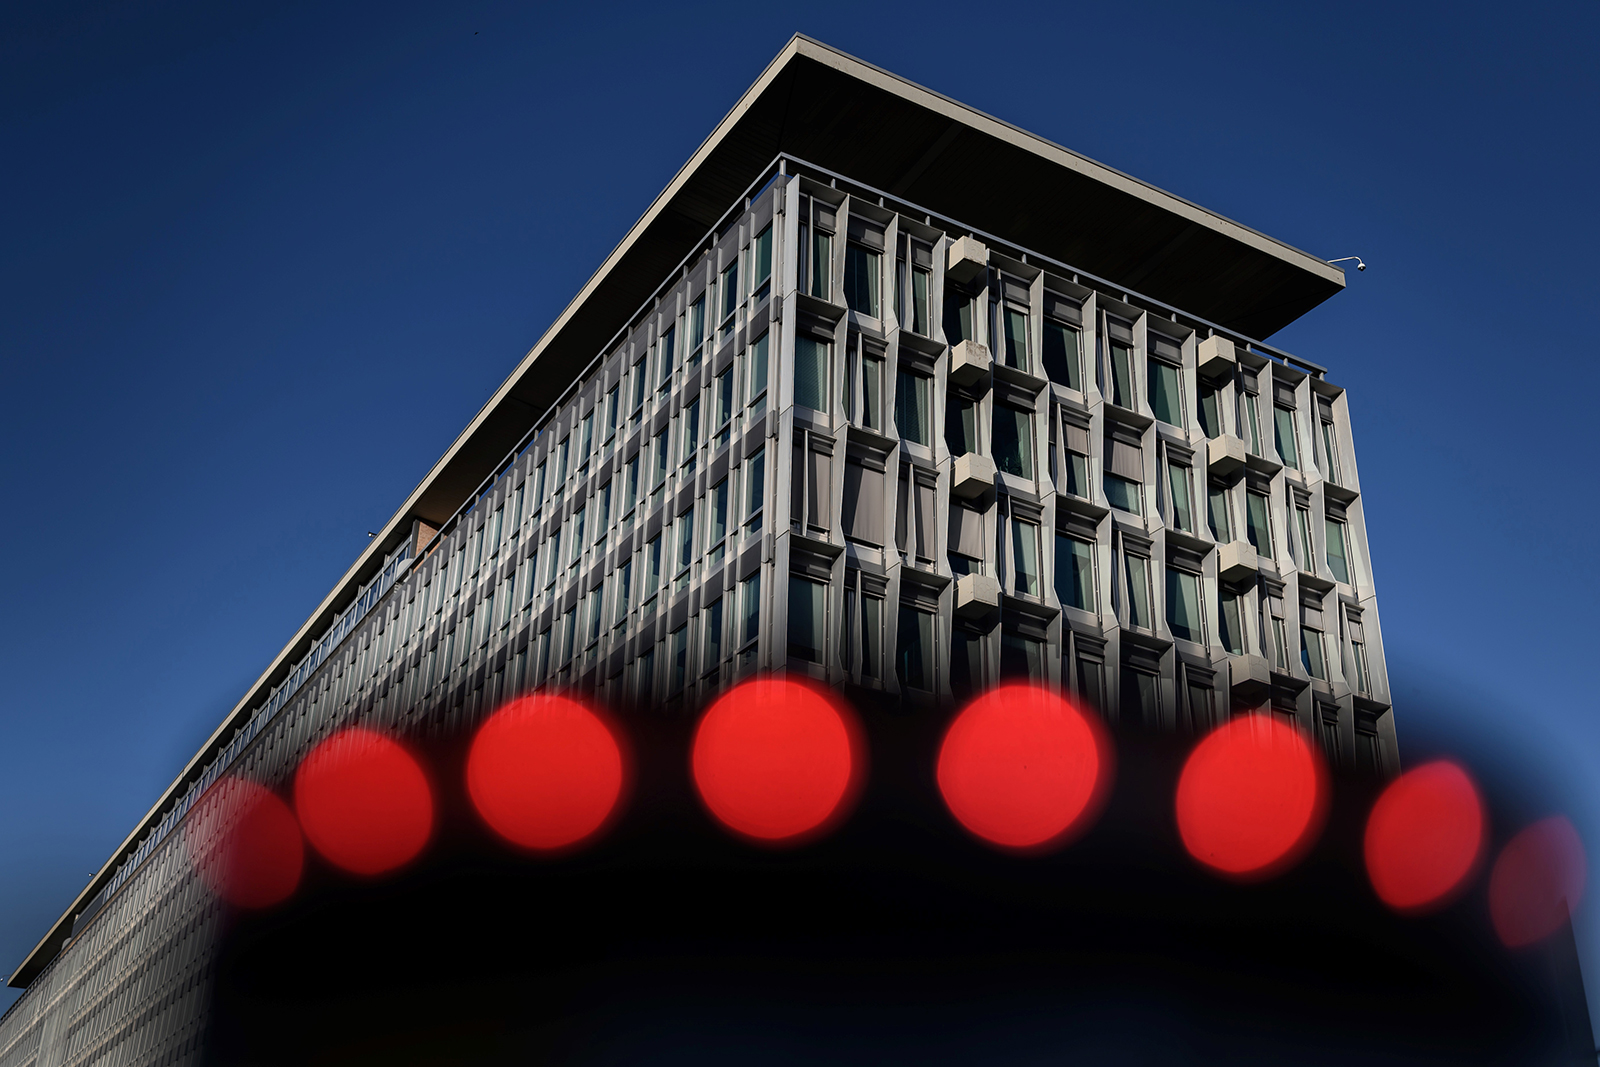 The headquarters of the World Health Organization (WHO) is seen in Geneva on Friday, May 29.